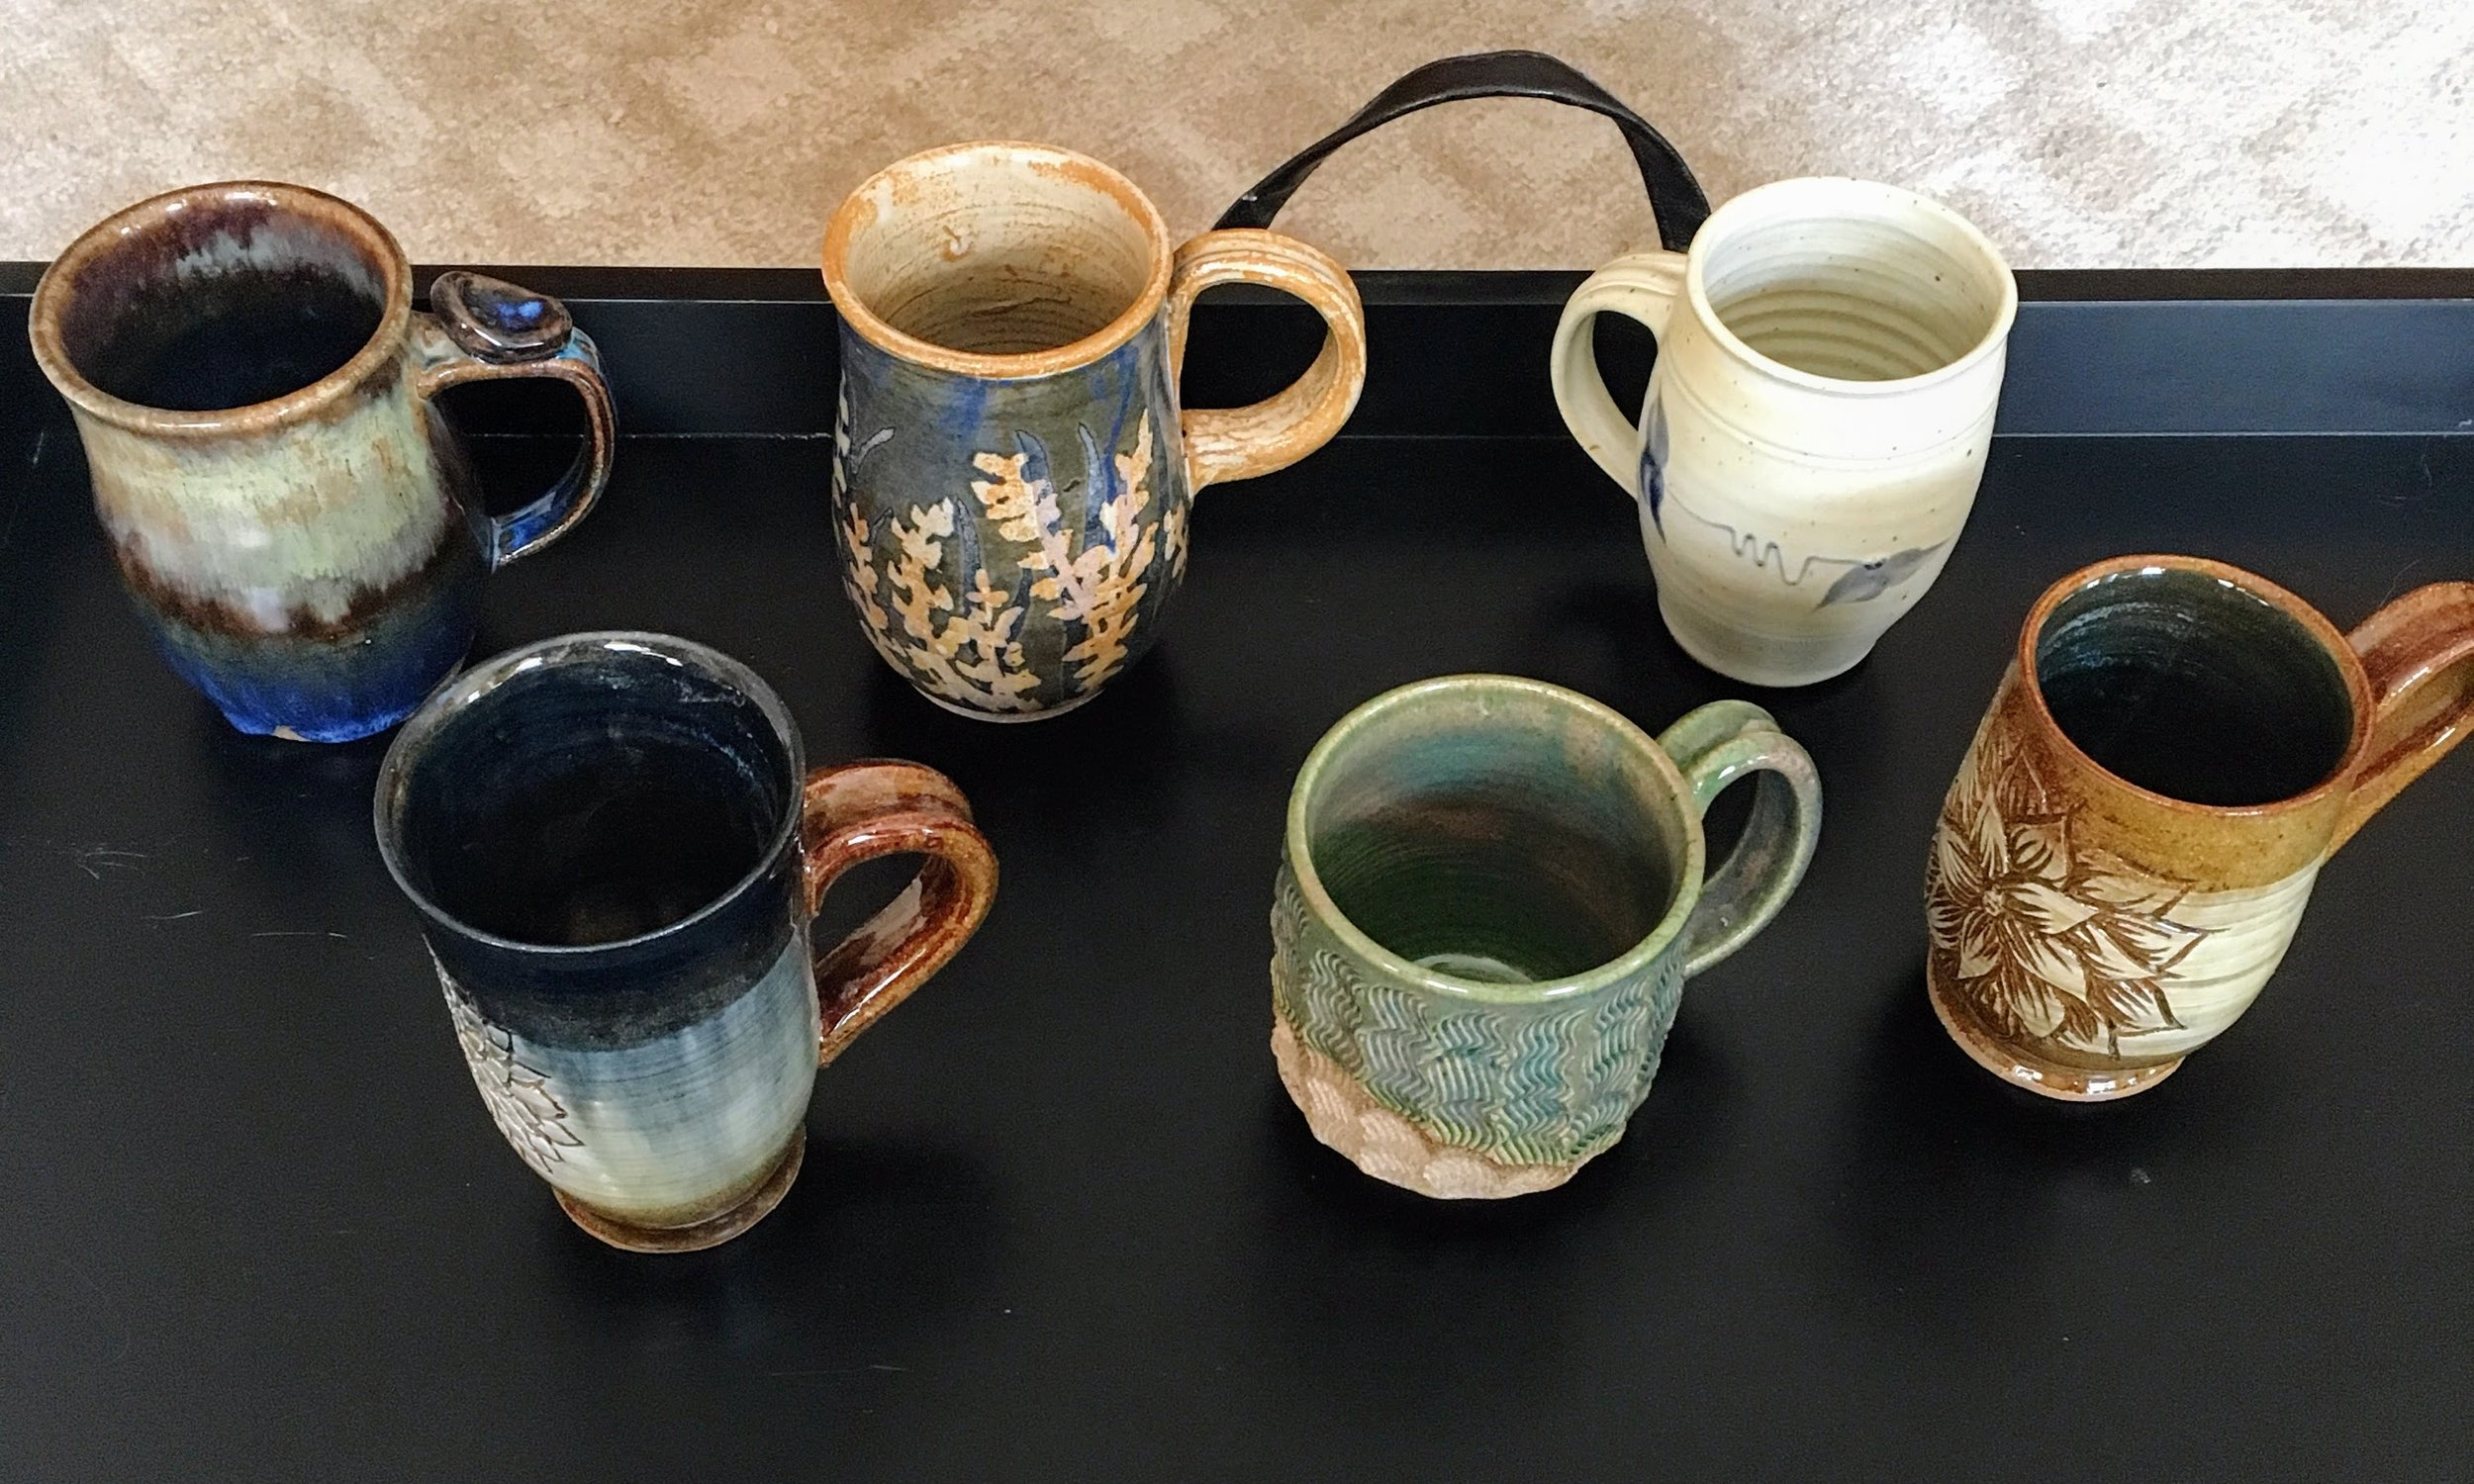 Top Row: First two are collaboration mugs made by myself,  Kaila Braley , and  Britt Tekla Drews  and third is from  Barking Spider Pottery Studio   Bottom Row: Mug made by myself, middle mug was made by W ater Dragon Pottery Studio from Halifax, Nova Scotia , and the third is one of mine.